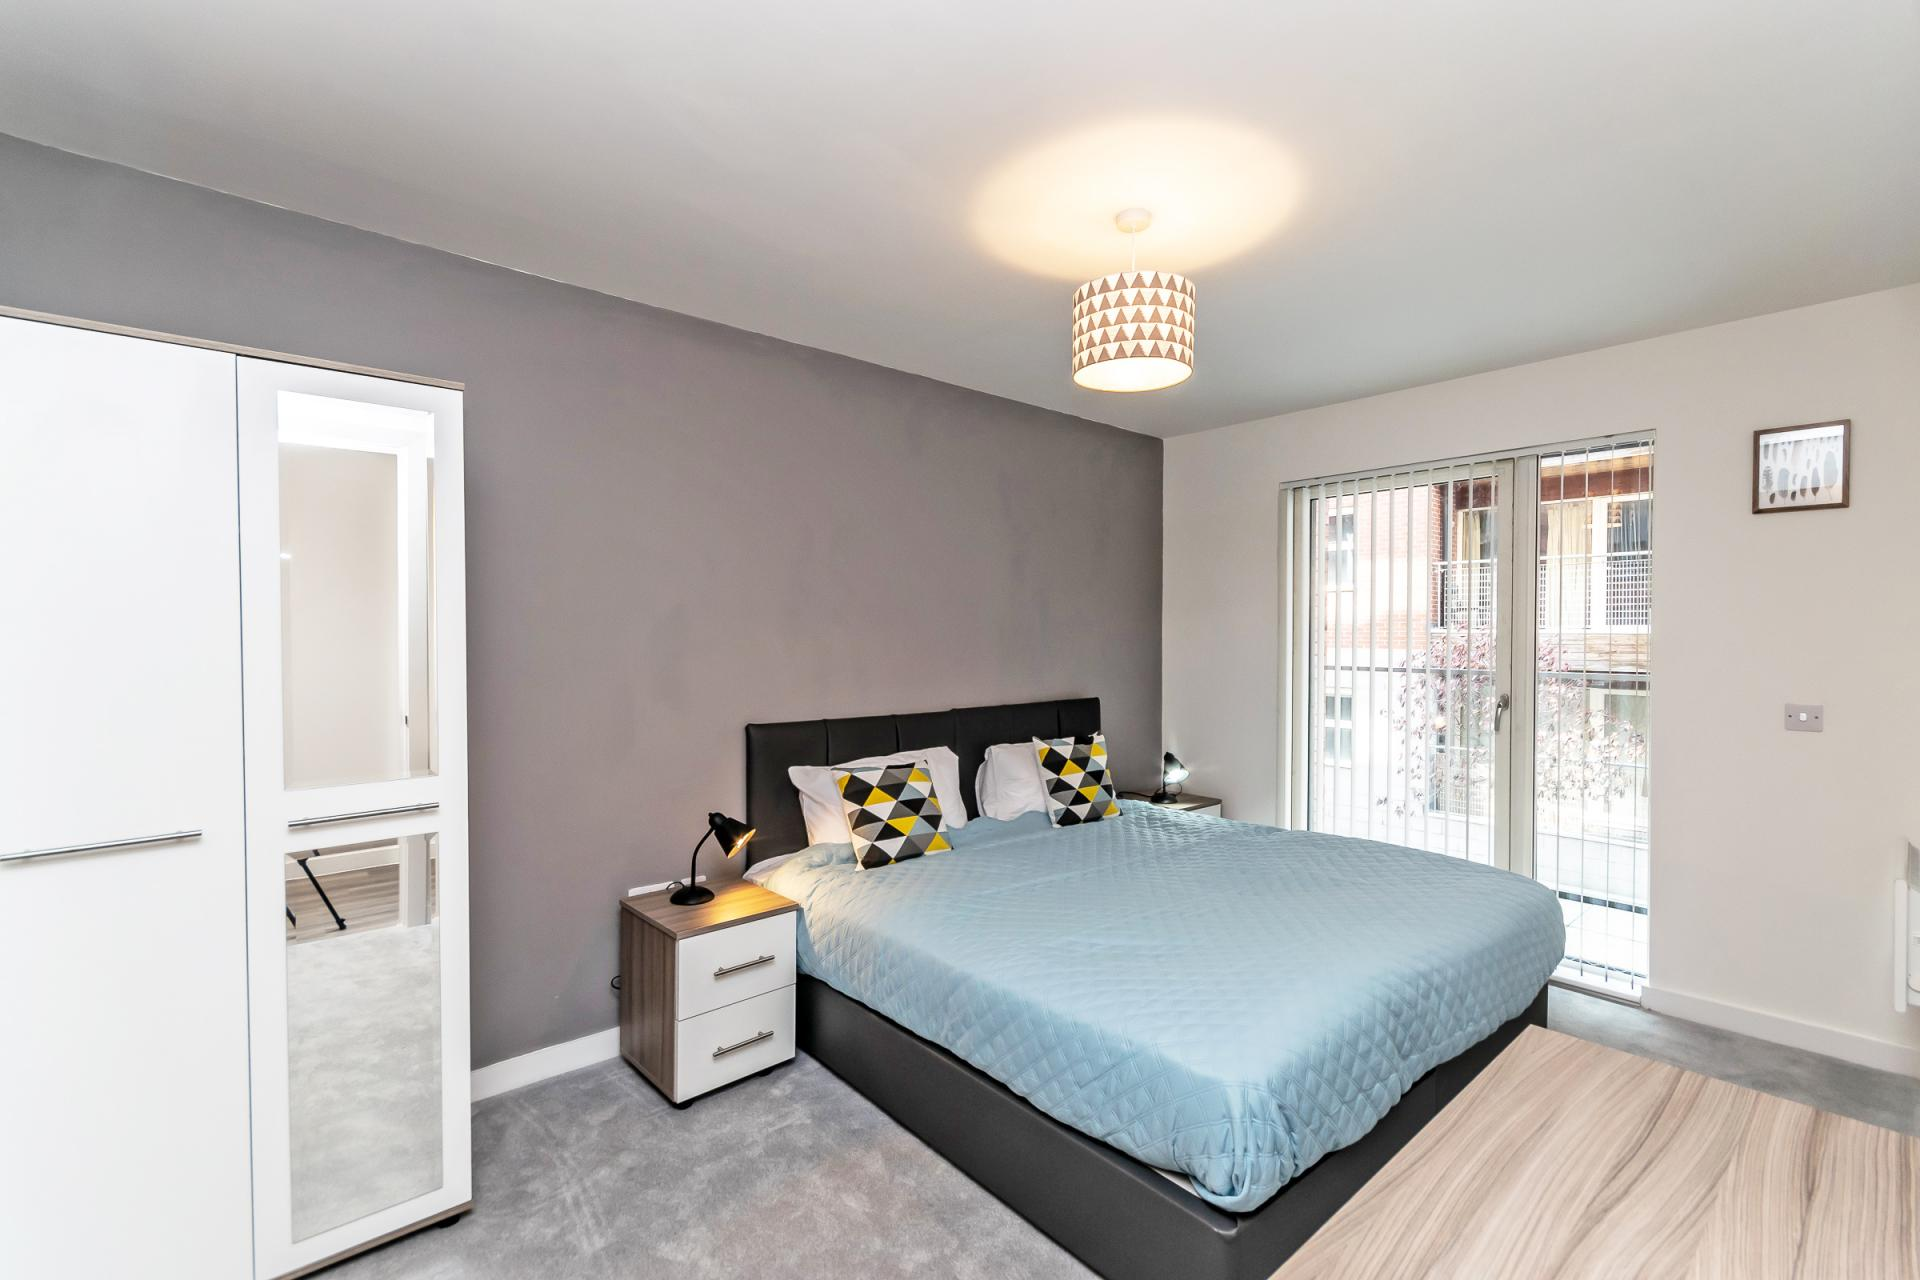 Bedroom at Halo House Serviced Apartments, Green Quarter, Manchester - Citybase Apartments